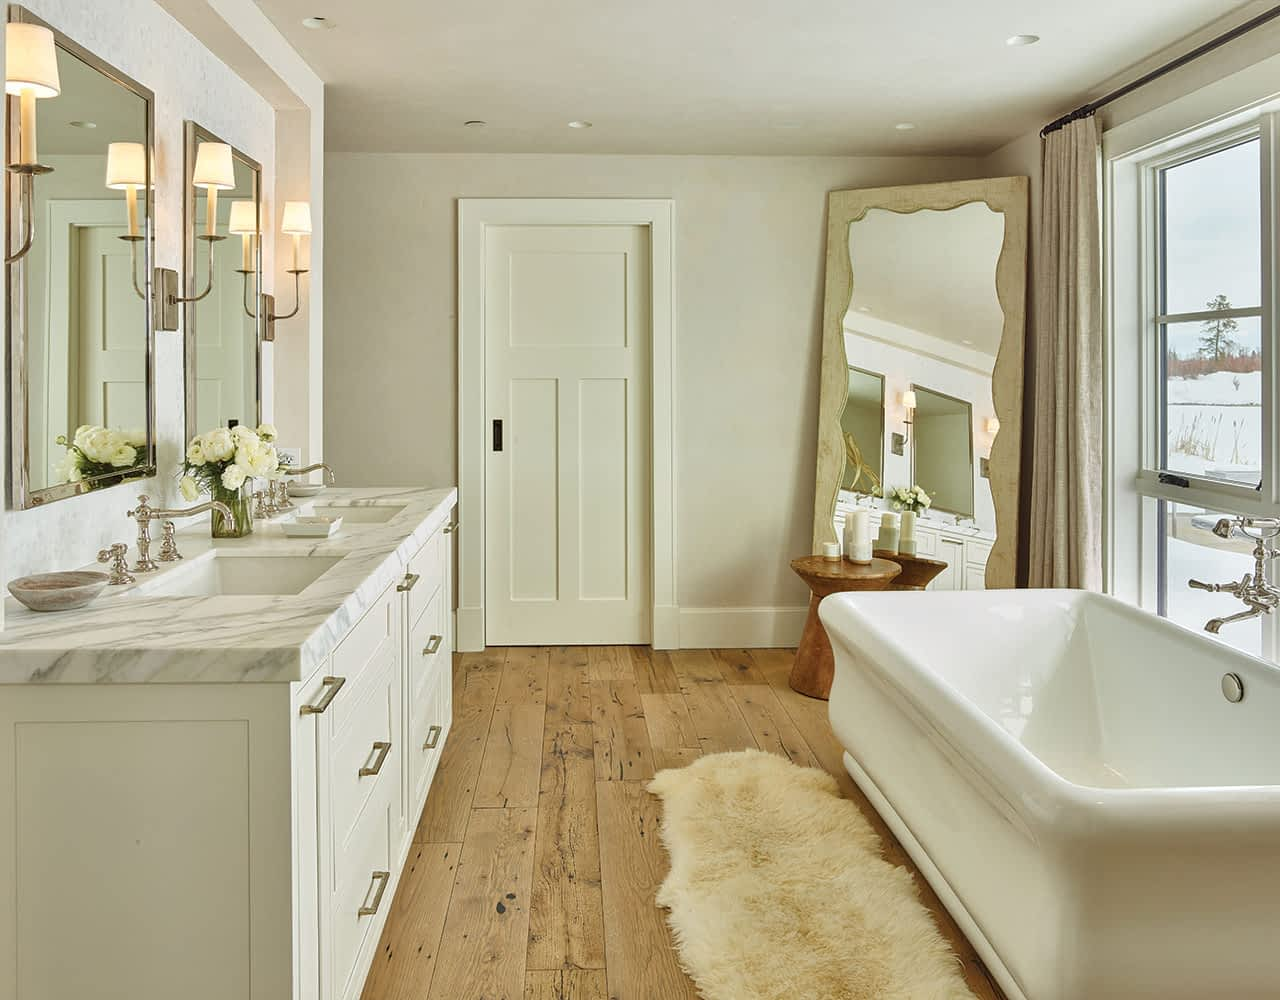 The vanity countertop is honed and aged Calacatta marble to match the shower bench. The faucets' finish is polished nickel. Hand-glazed Moroccan tiles decorate the vanity backsplash.